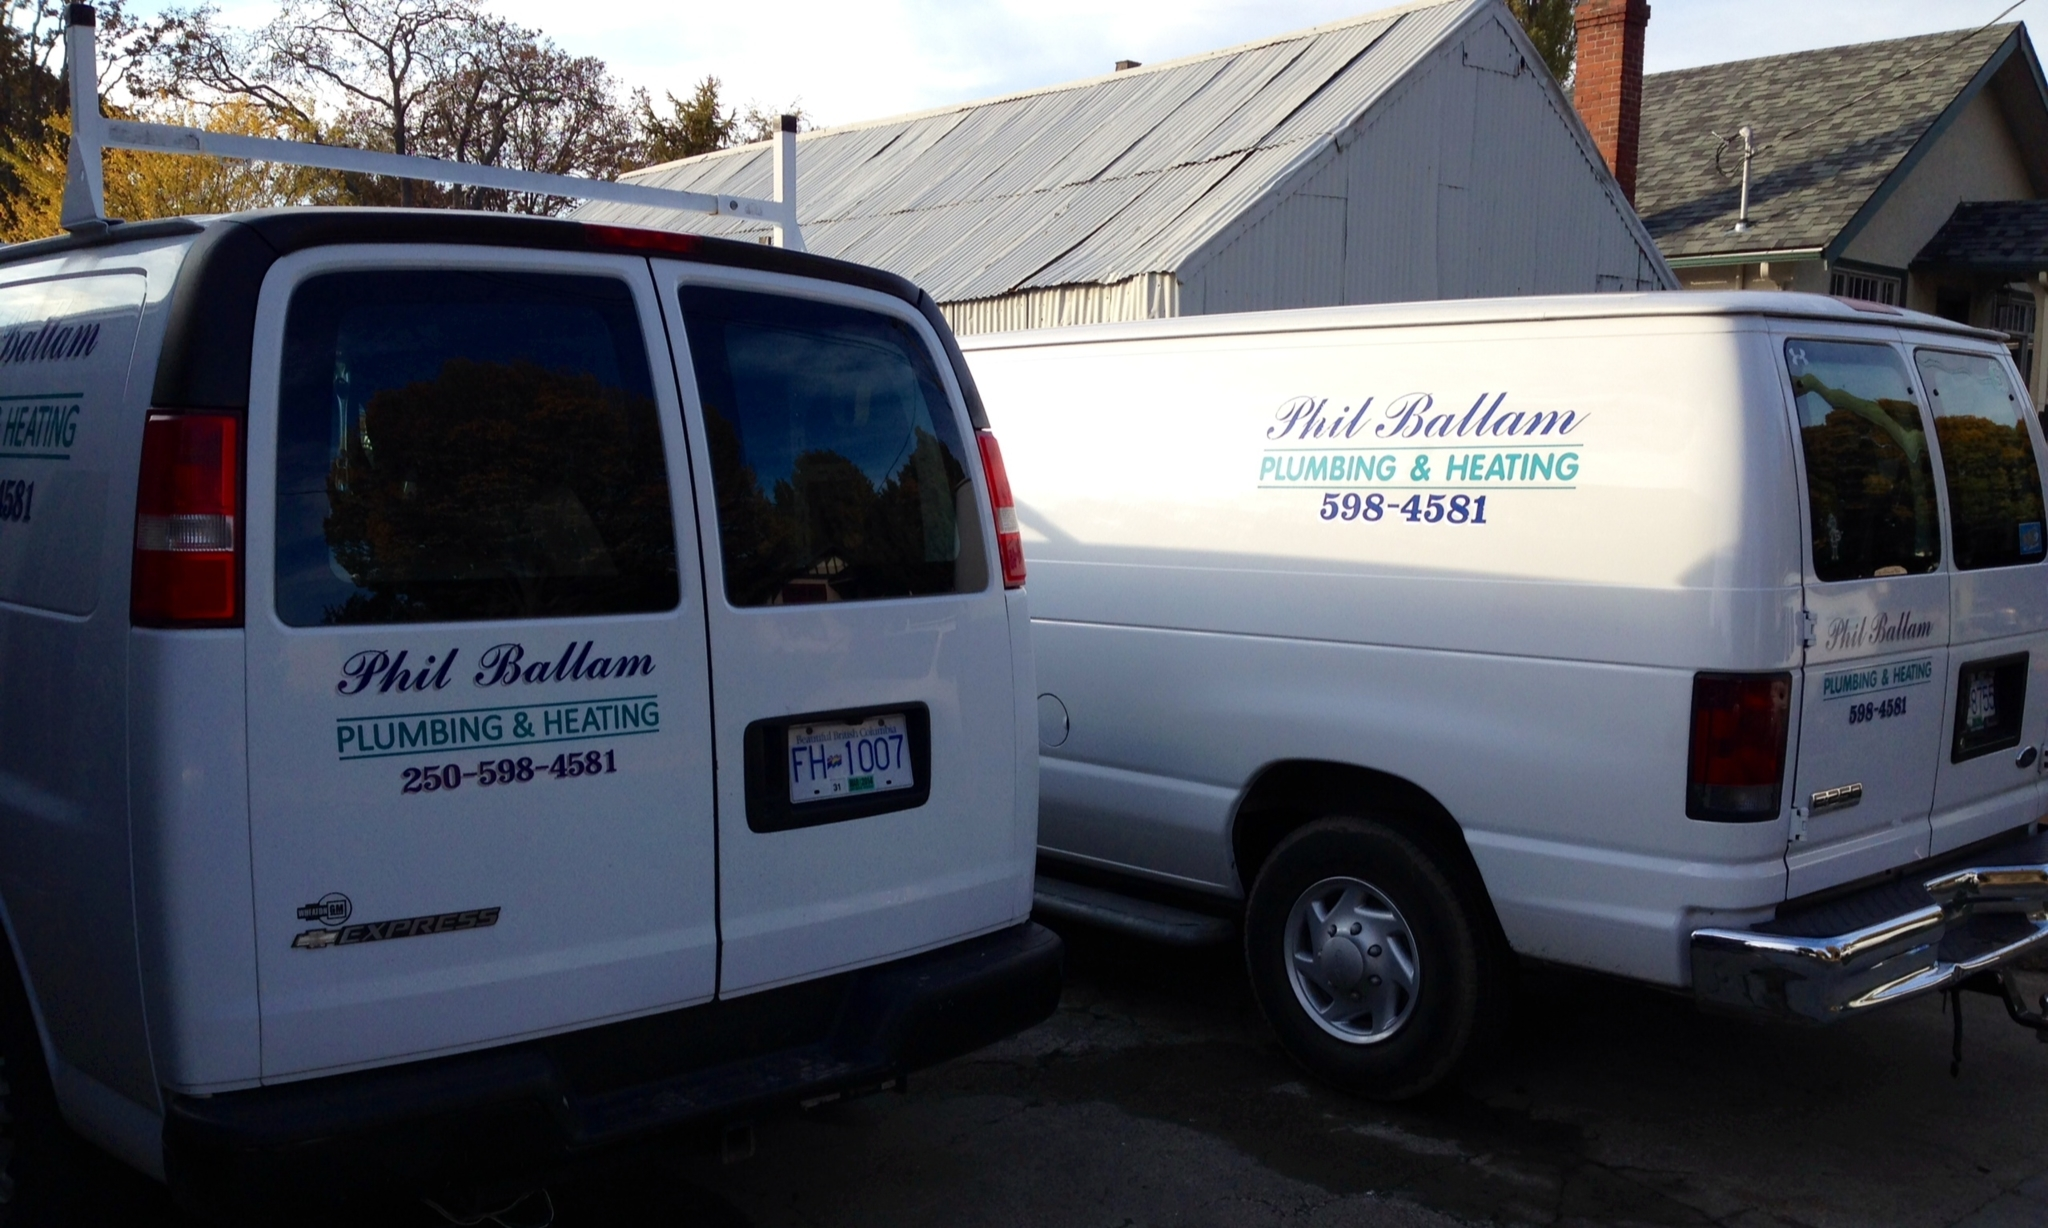 Ballam Phil Plumbing & Heating Co Ltd in Victoria